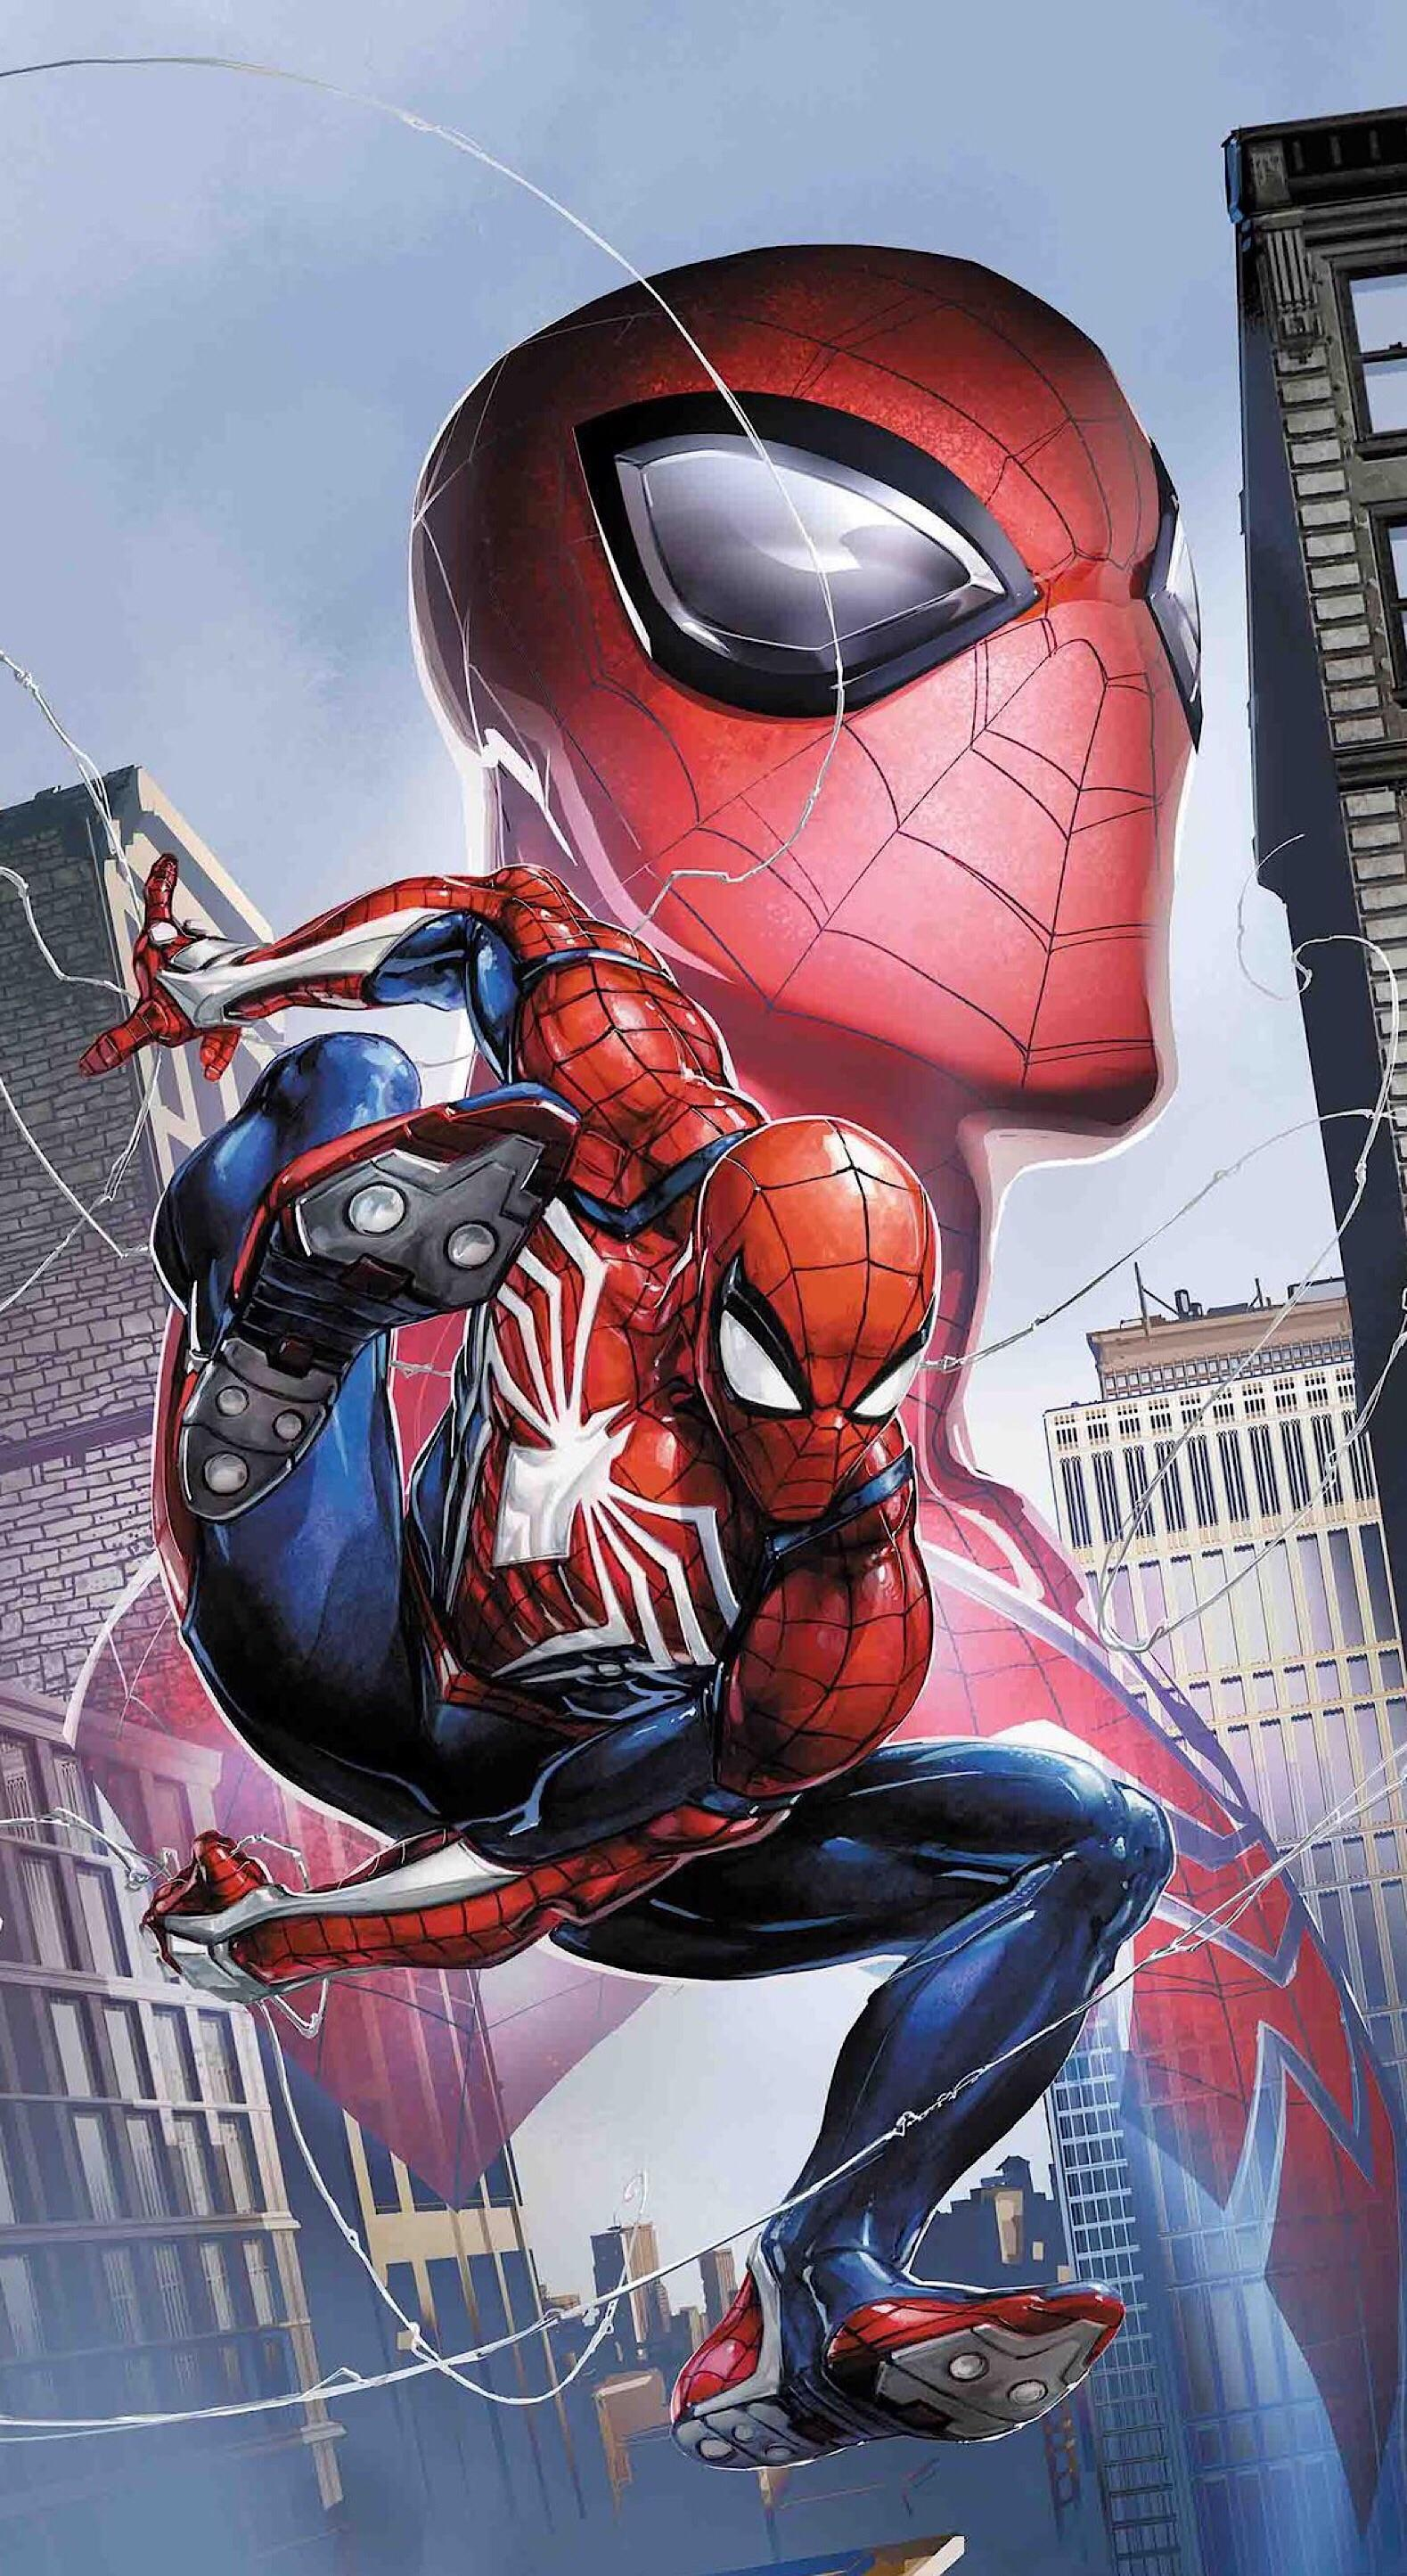 Marvel spider man wallpaper for pc in hd